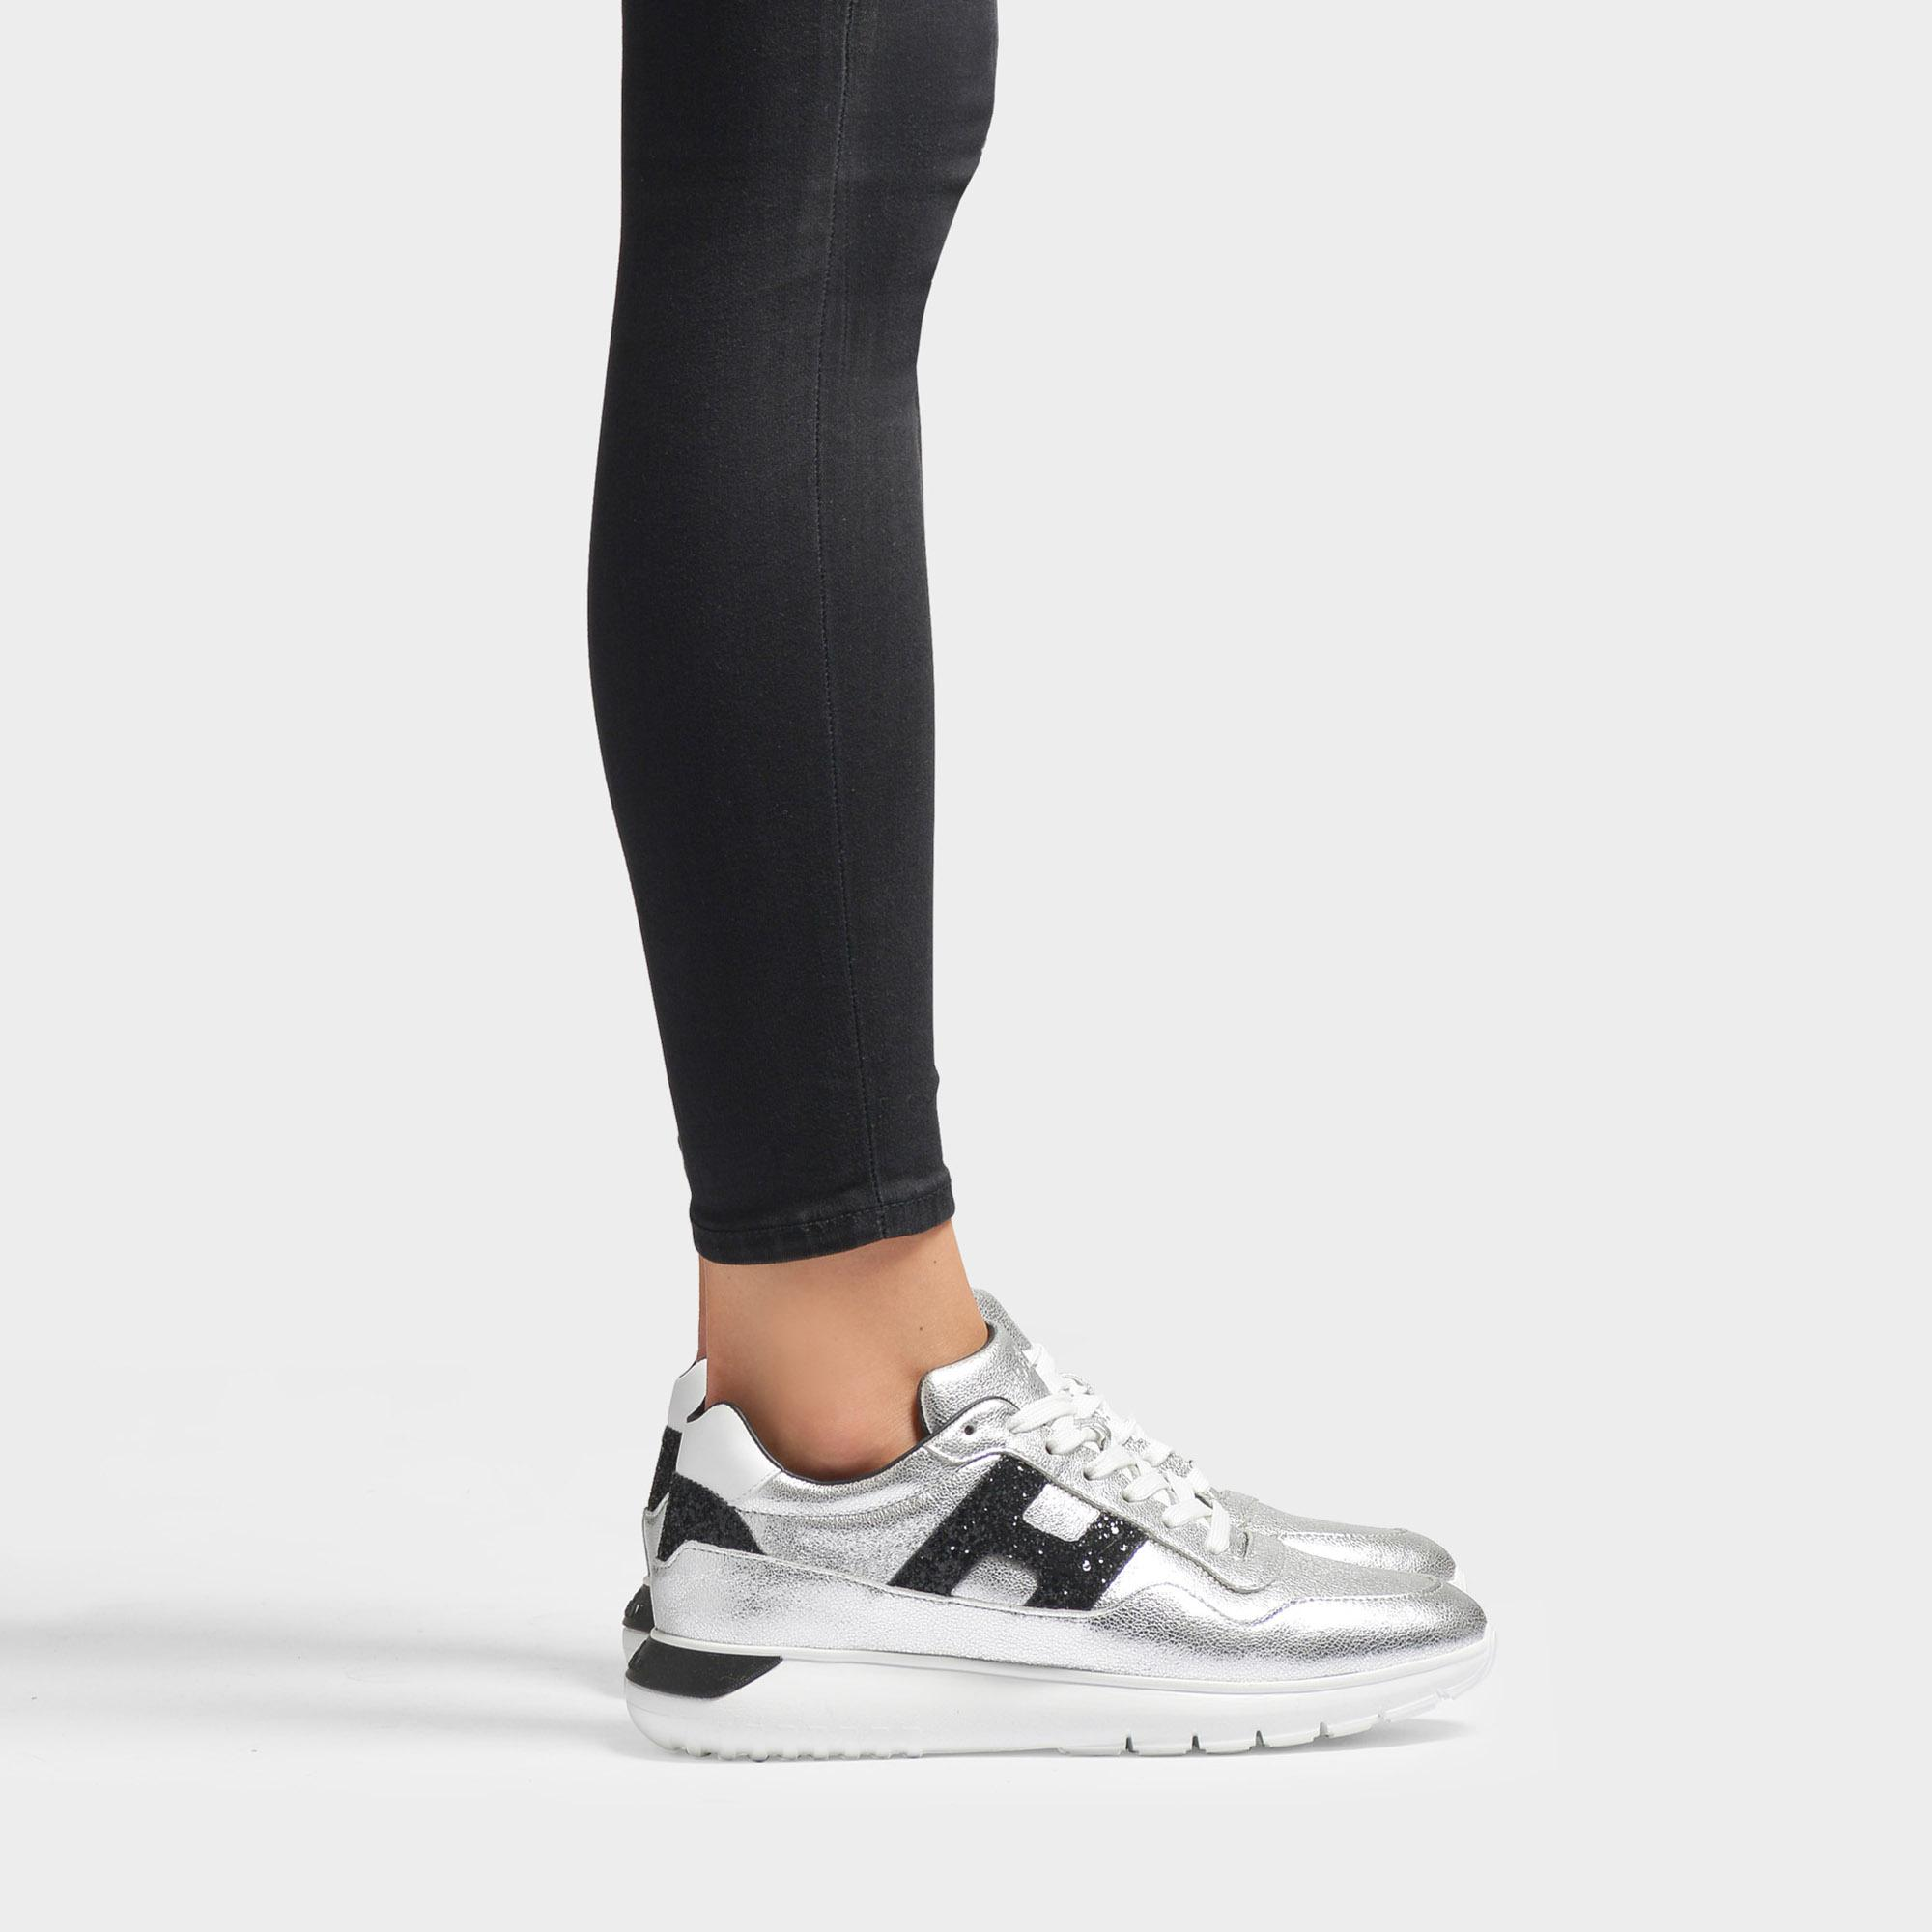 Hogan Interactive Cube Sneakers In Silver And Black Leather - Lyst